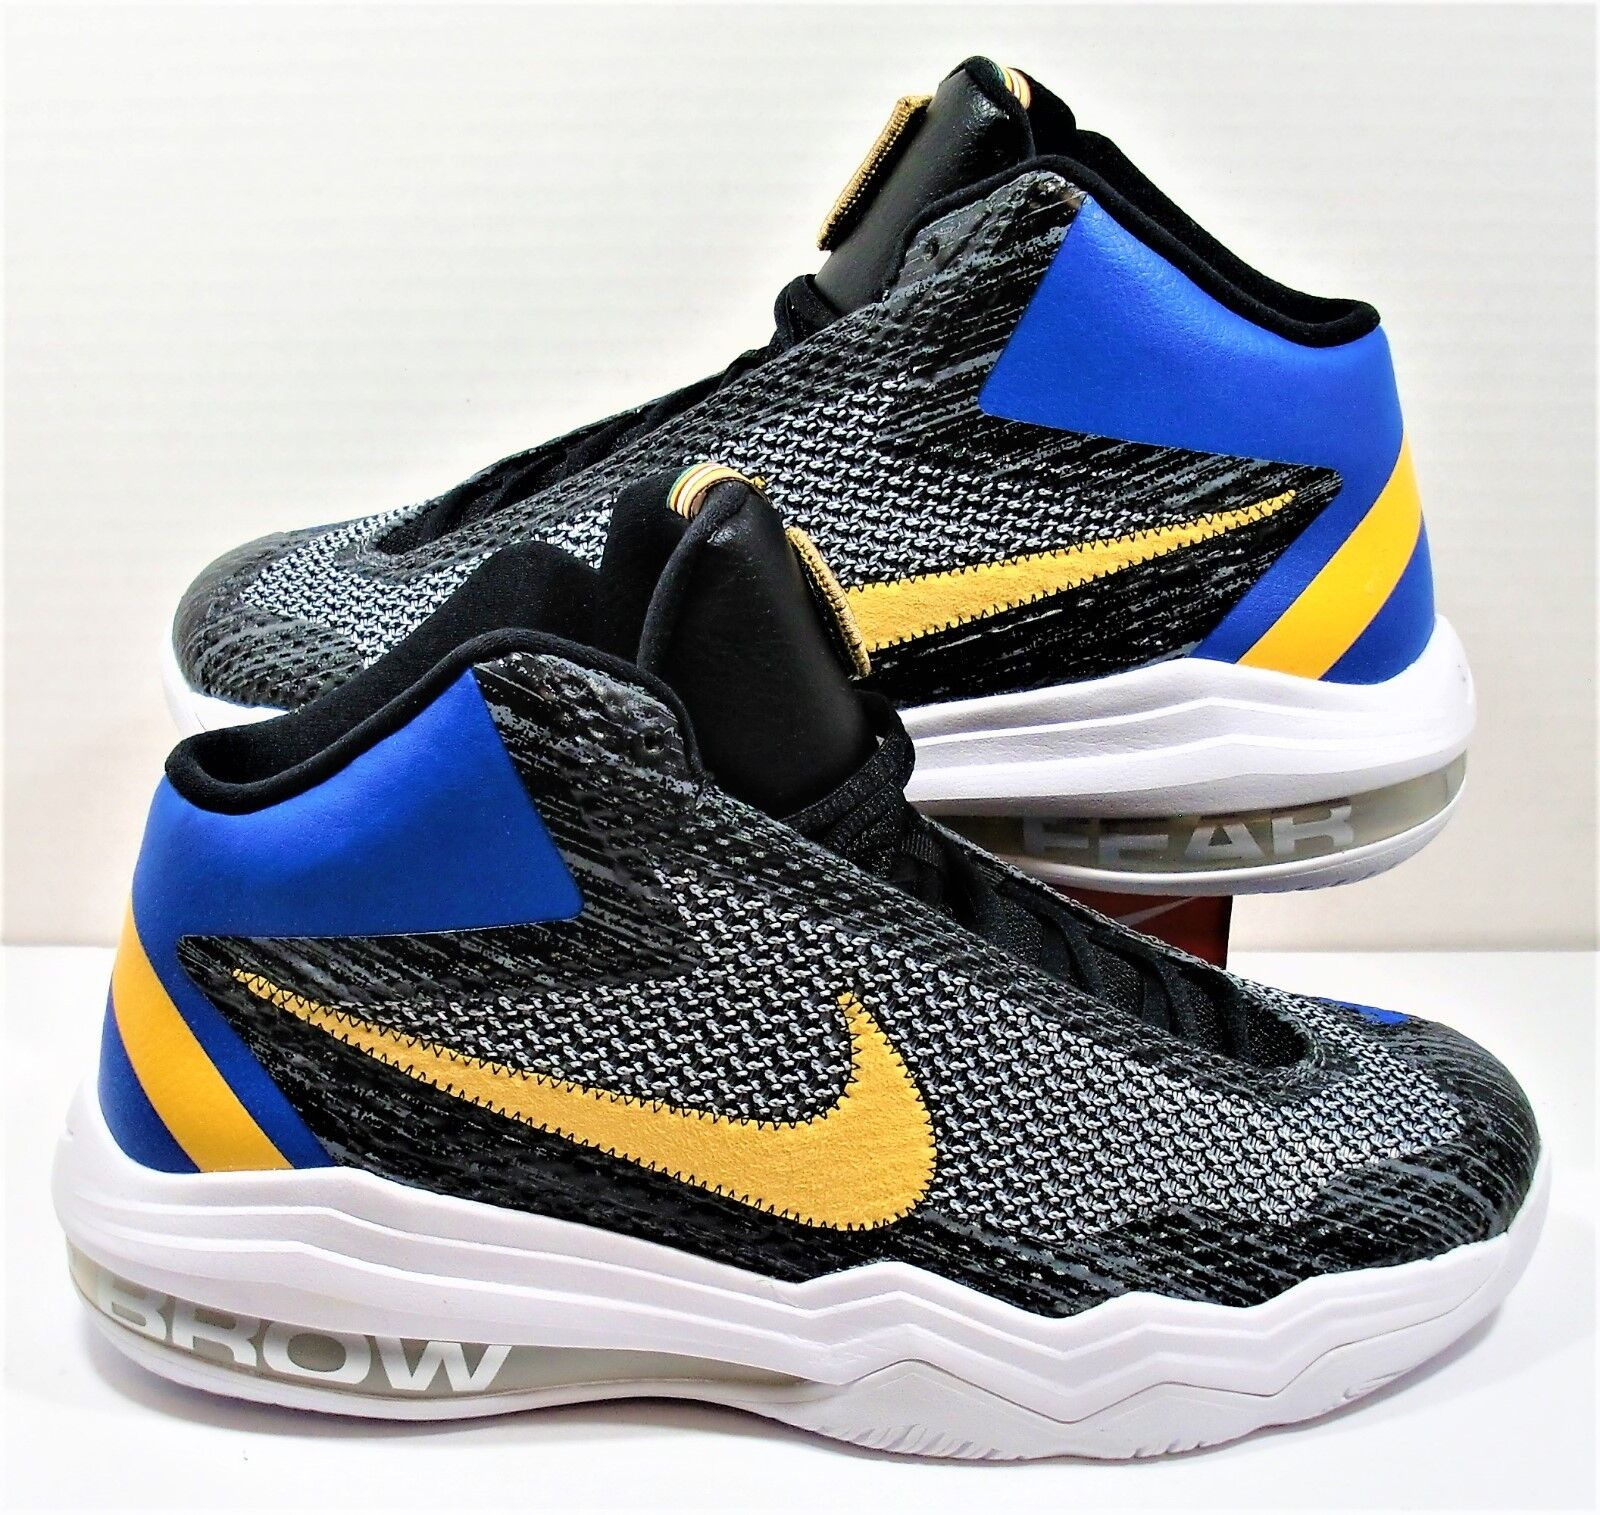 Nike LMTD Air Max Audacity ASG LMTD Nike Anthony Davis Mens Shoes Sz 11 NEW 840677 100 7a966d